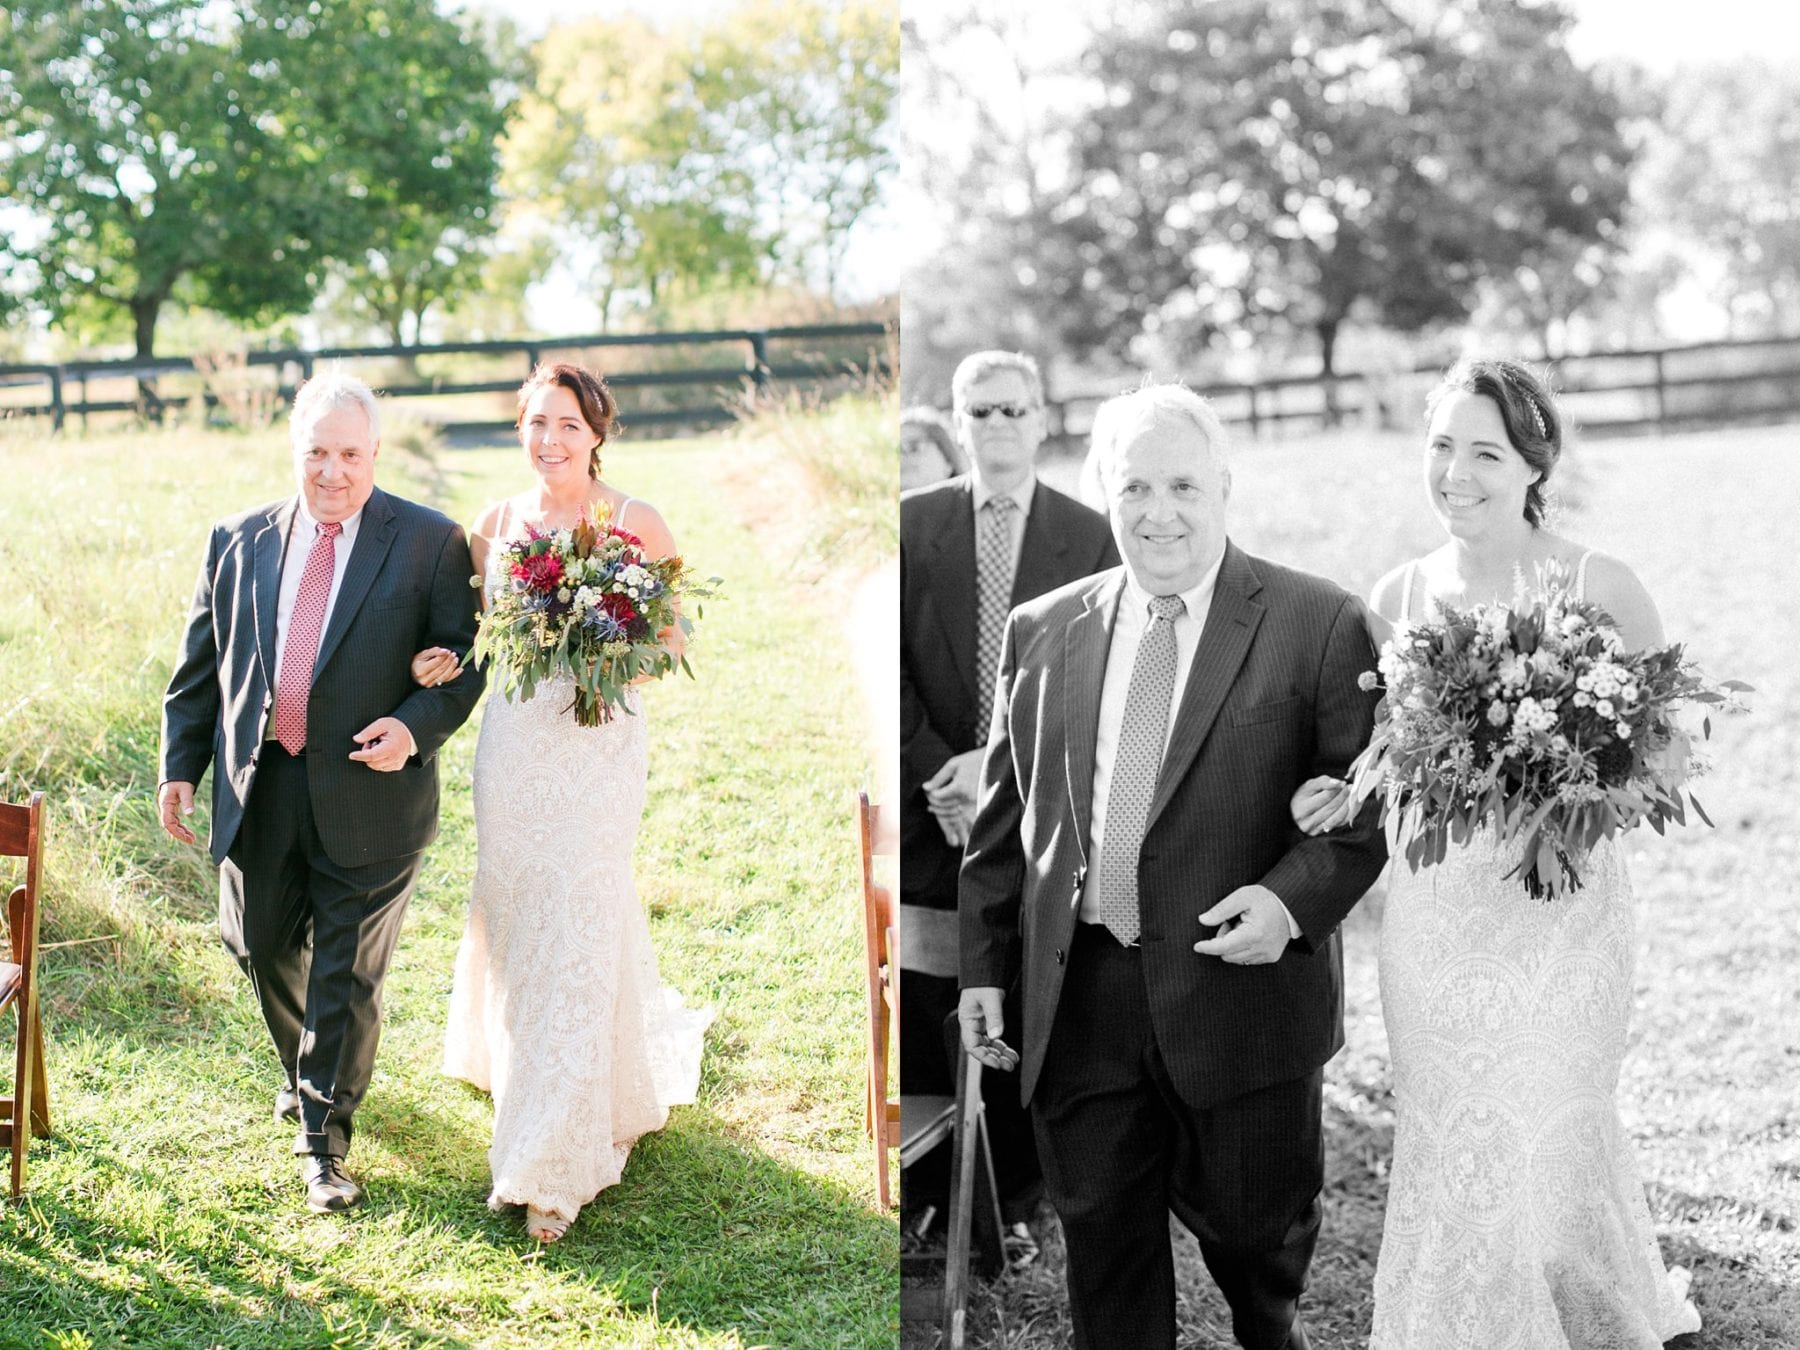 Tranquility Farm Wedding Photos Leesburg Wedding Photographer Megan Kelsey Photography Virginia Wedding Photographer Matt & Colleen-123.jpg